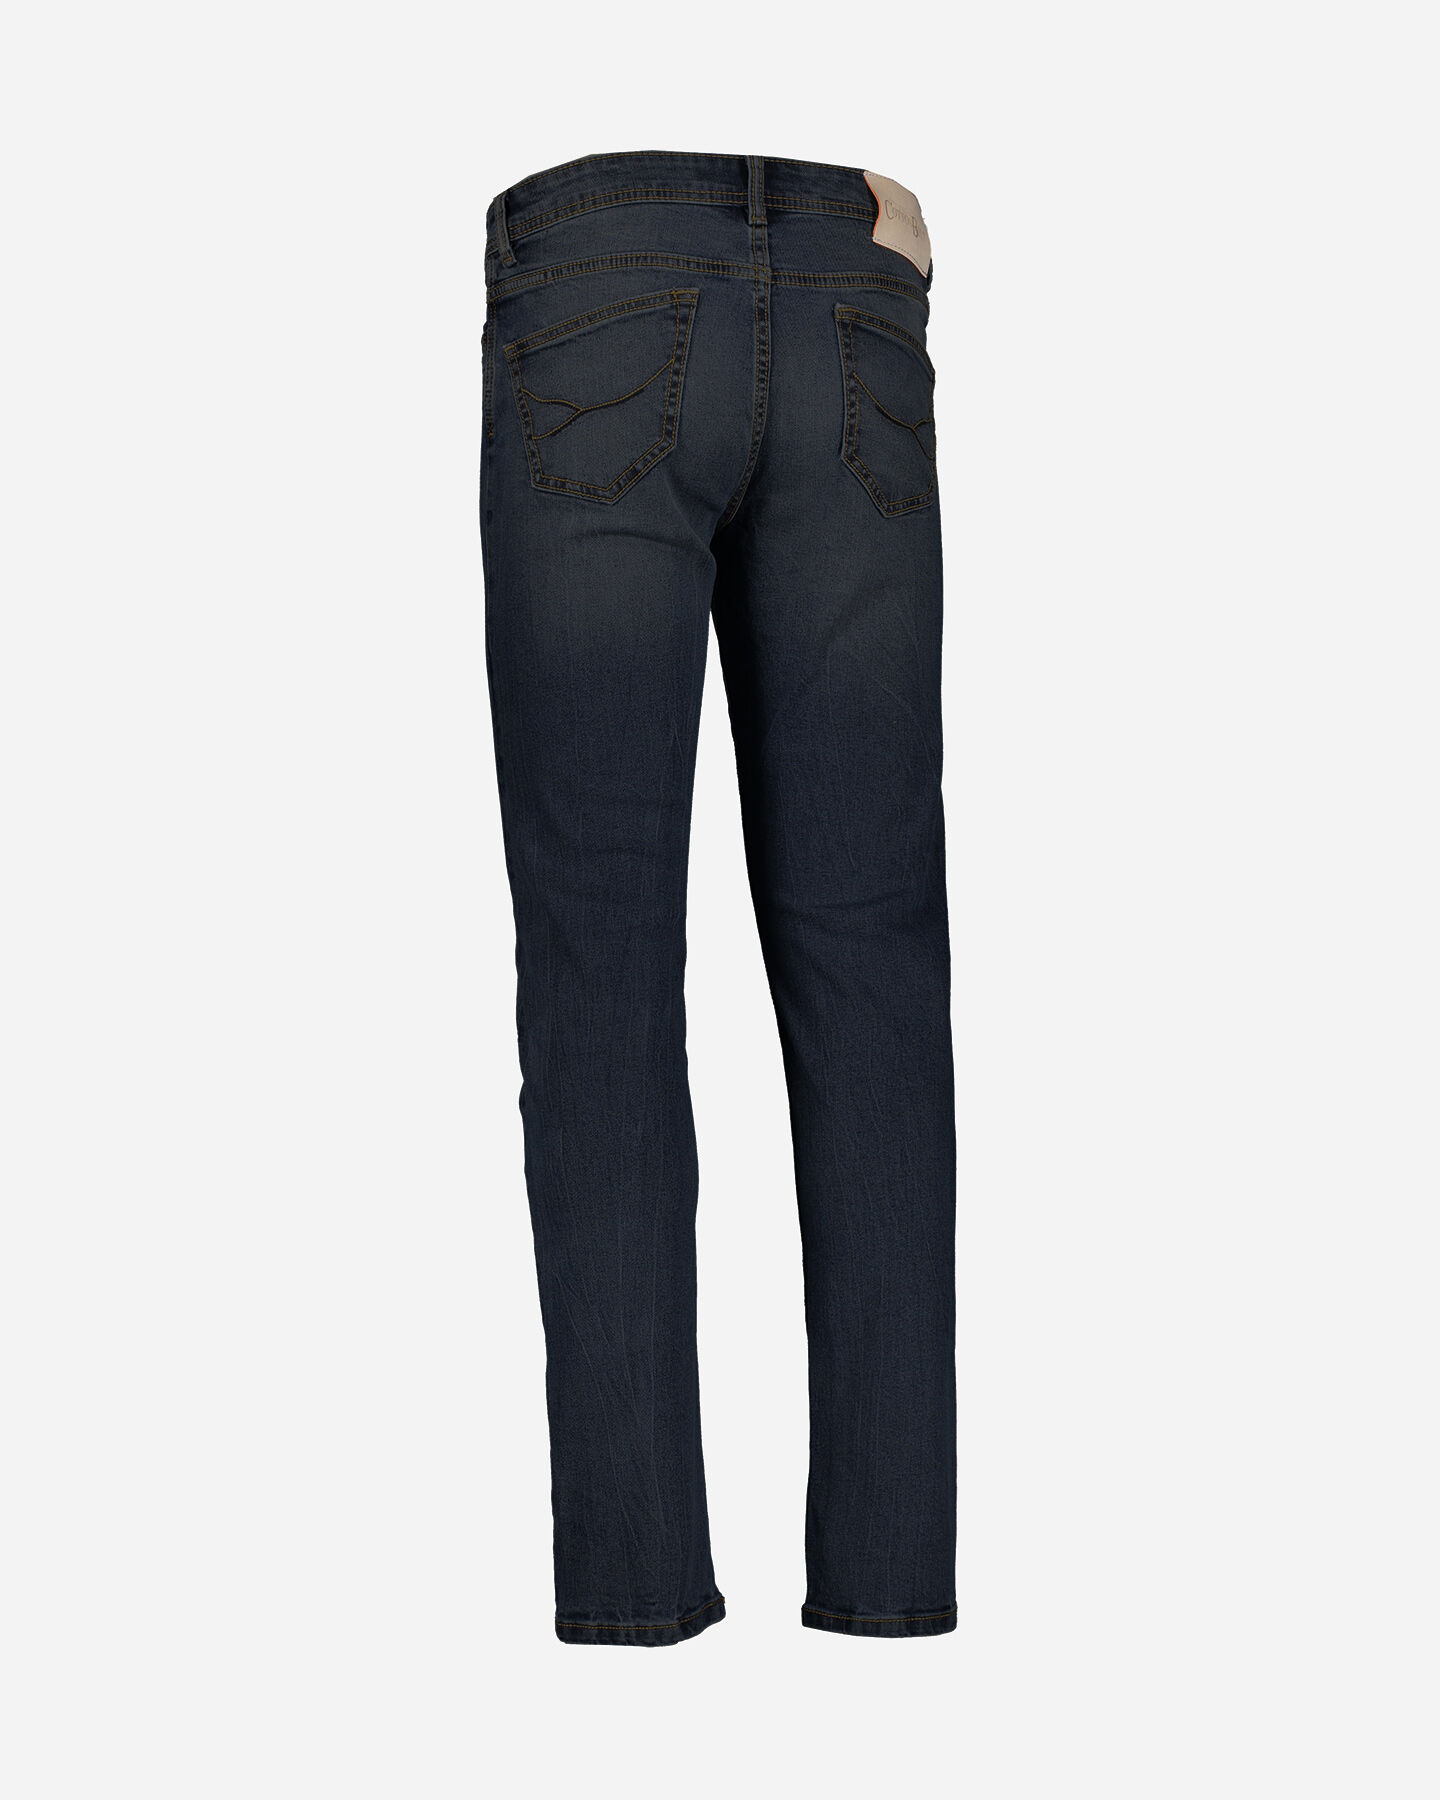 Jeans COTTON BELT 5TS MODERN M S4076653 scatto 5